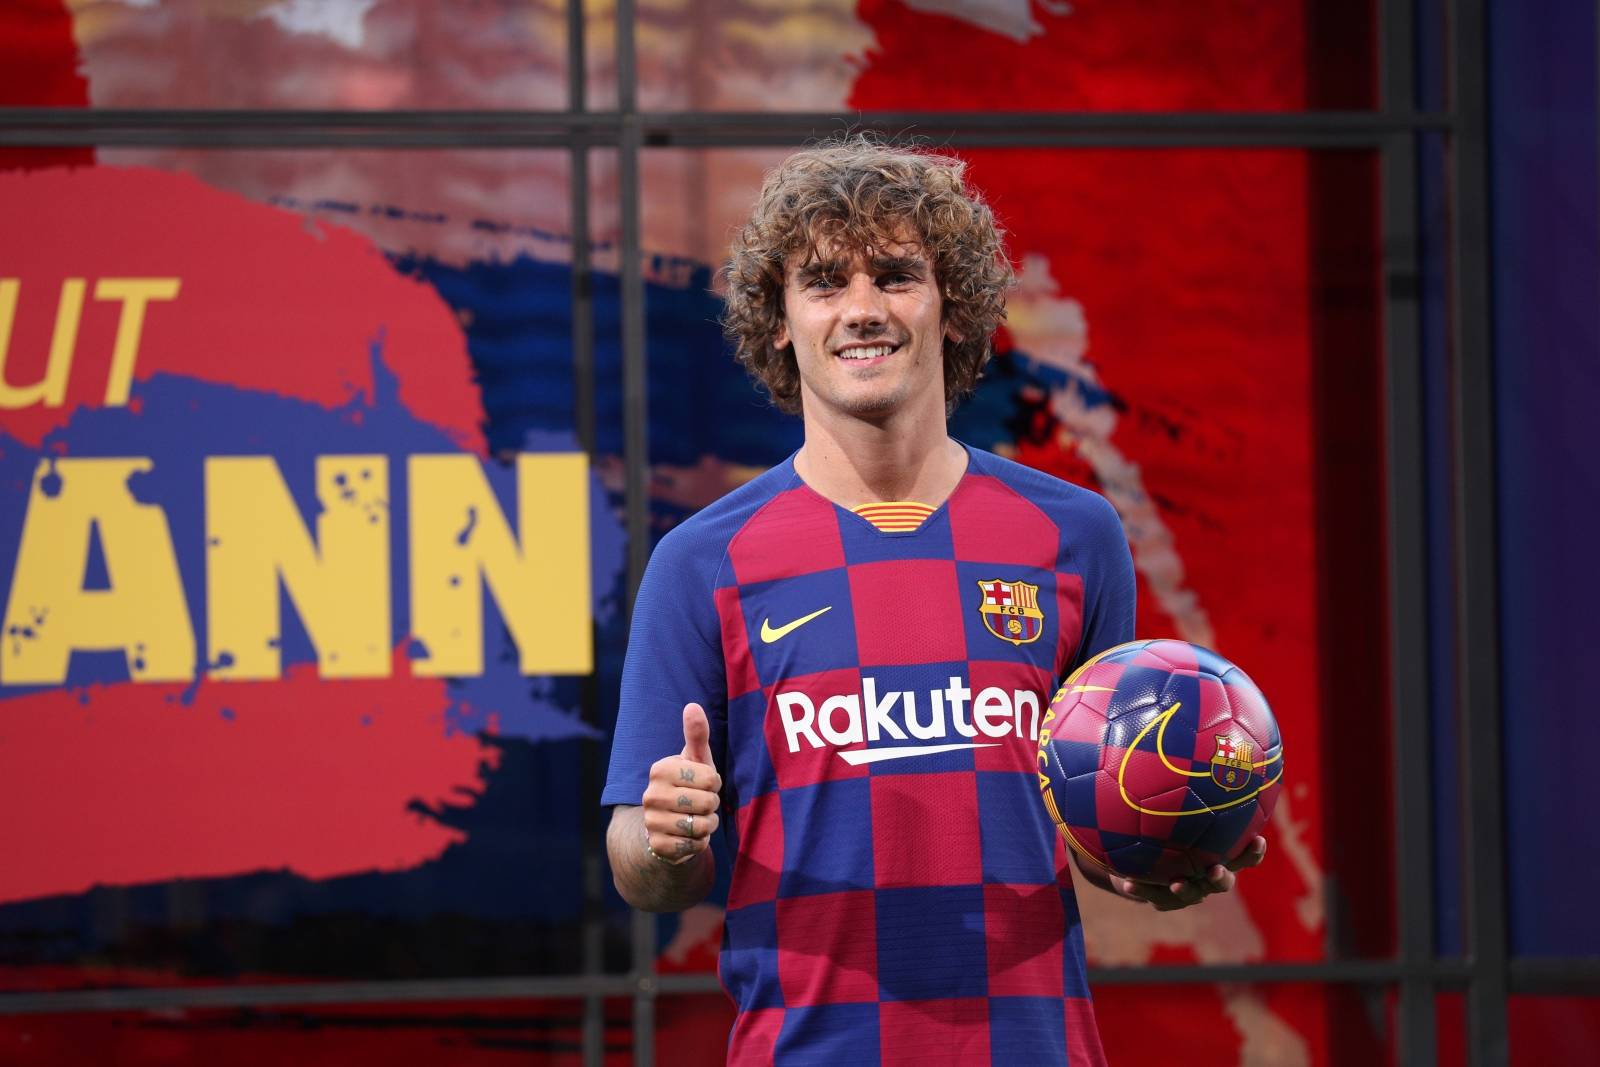 FC Barcelona presentation for new signing Antoine Griezmann